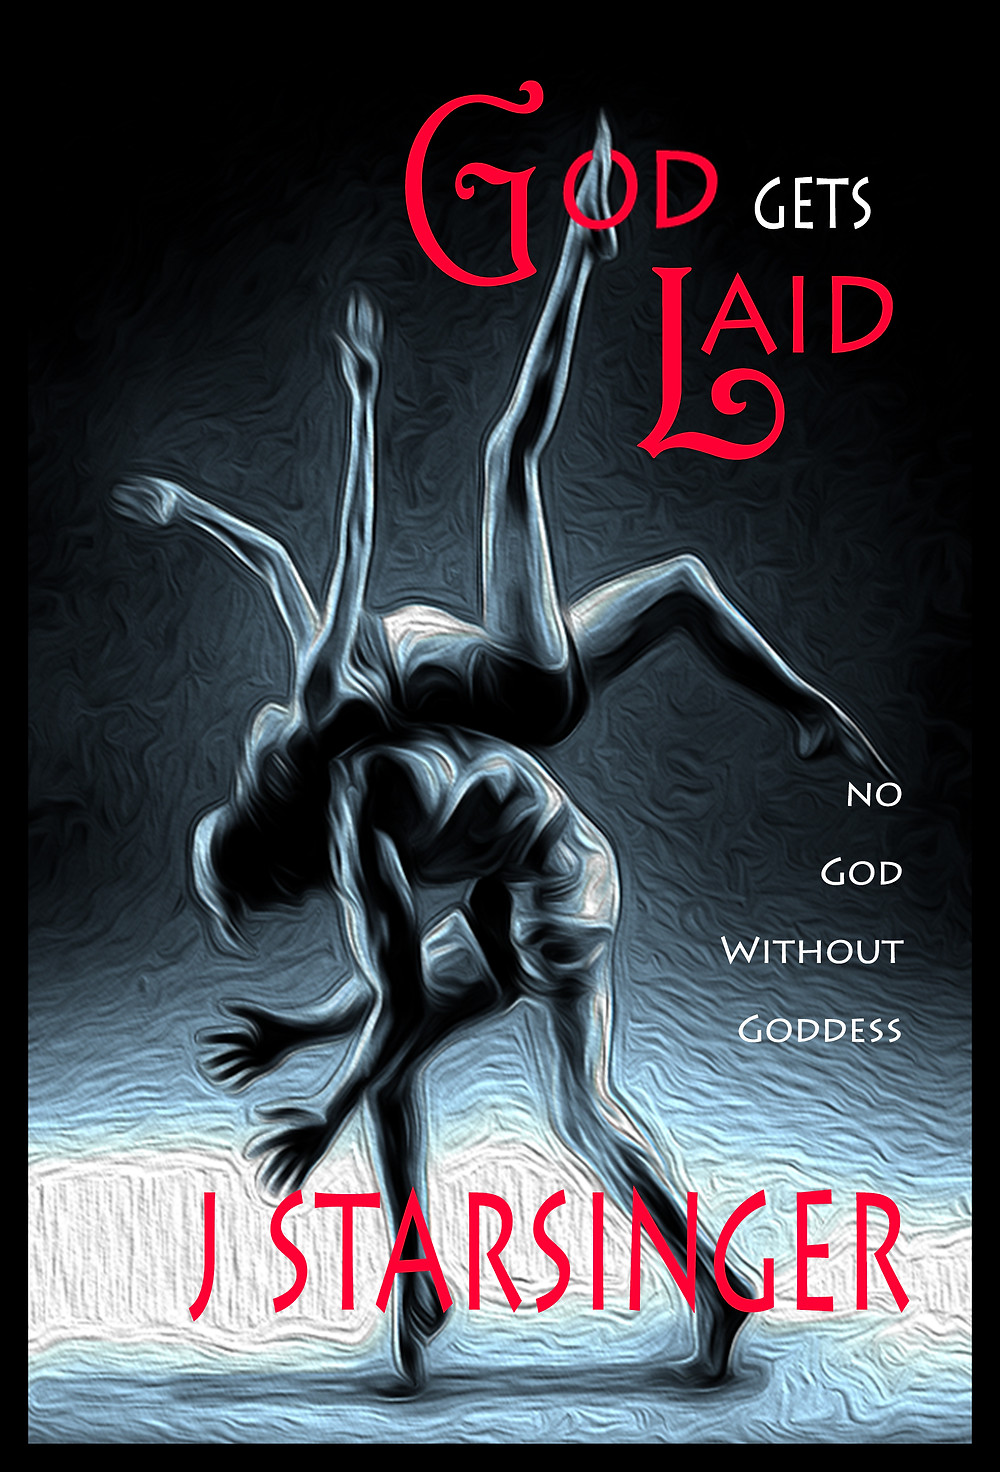 God Gets Laid book cover image